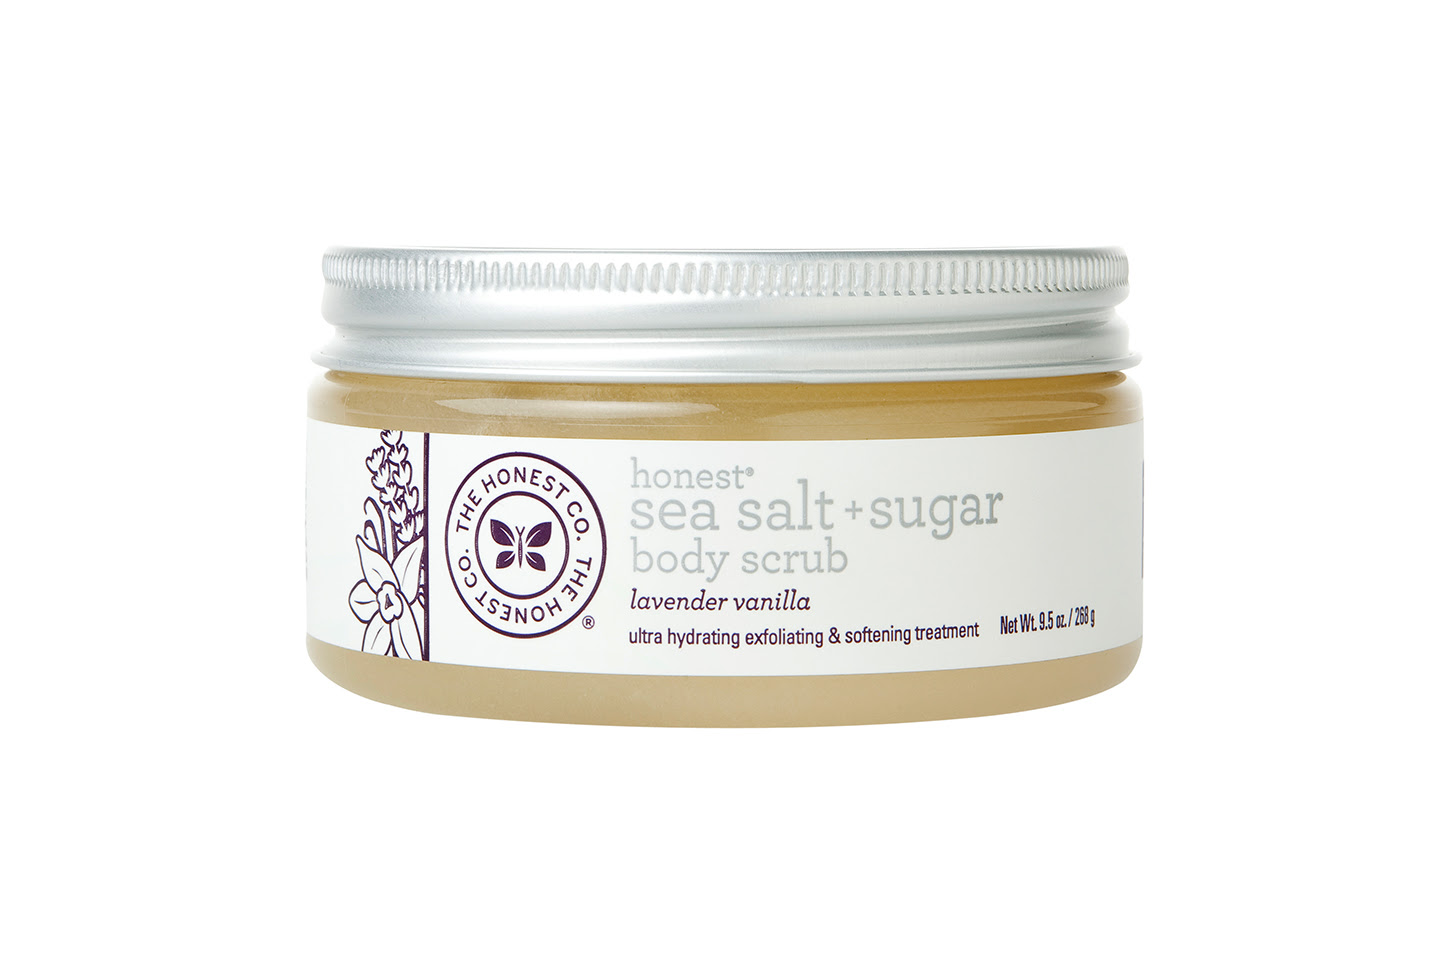 Sea Salt + Body Scrub